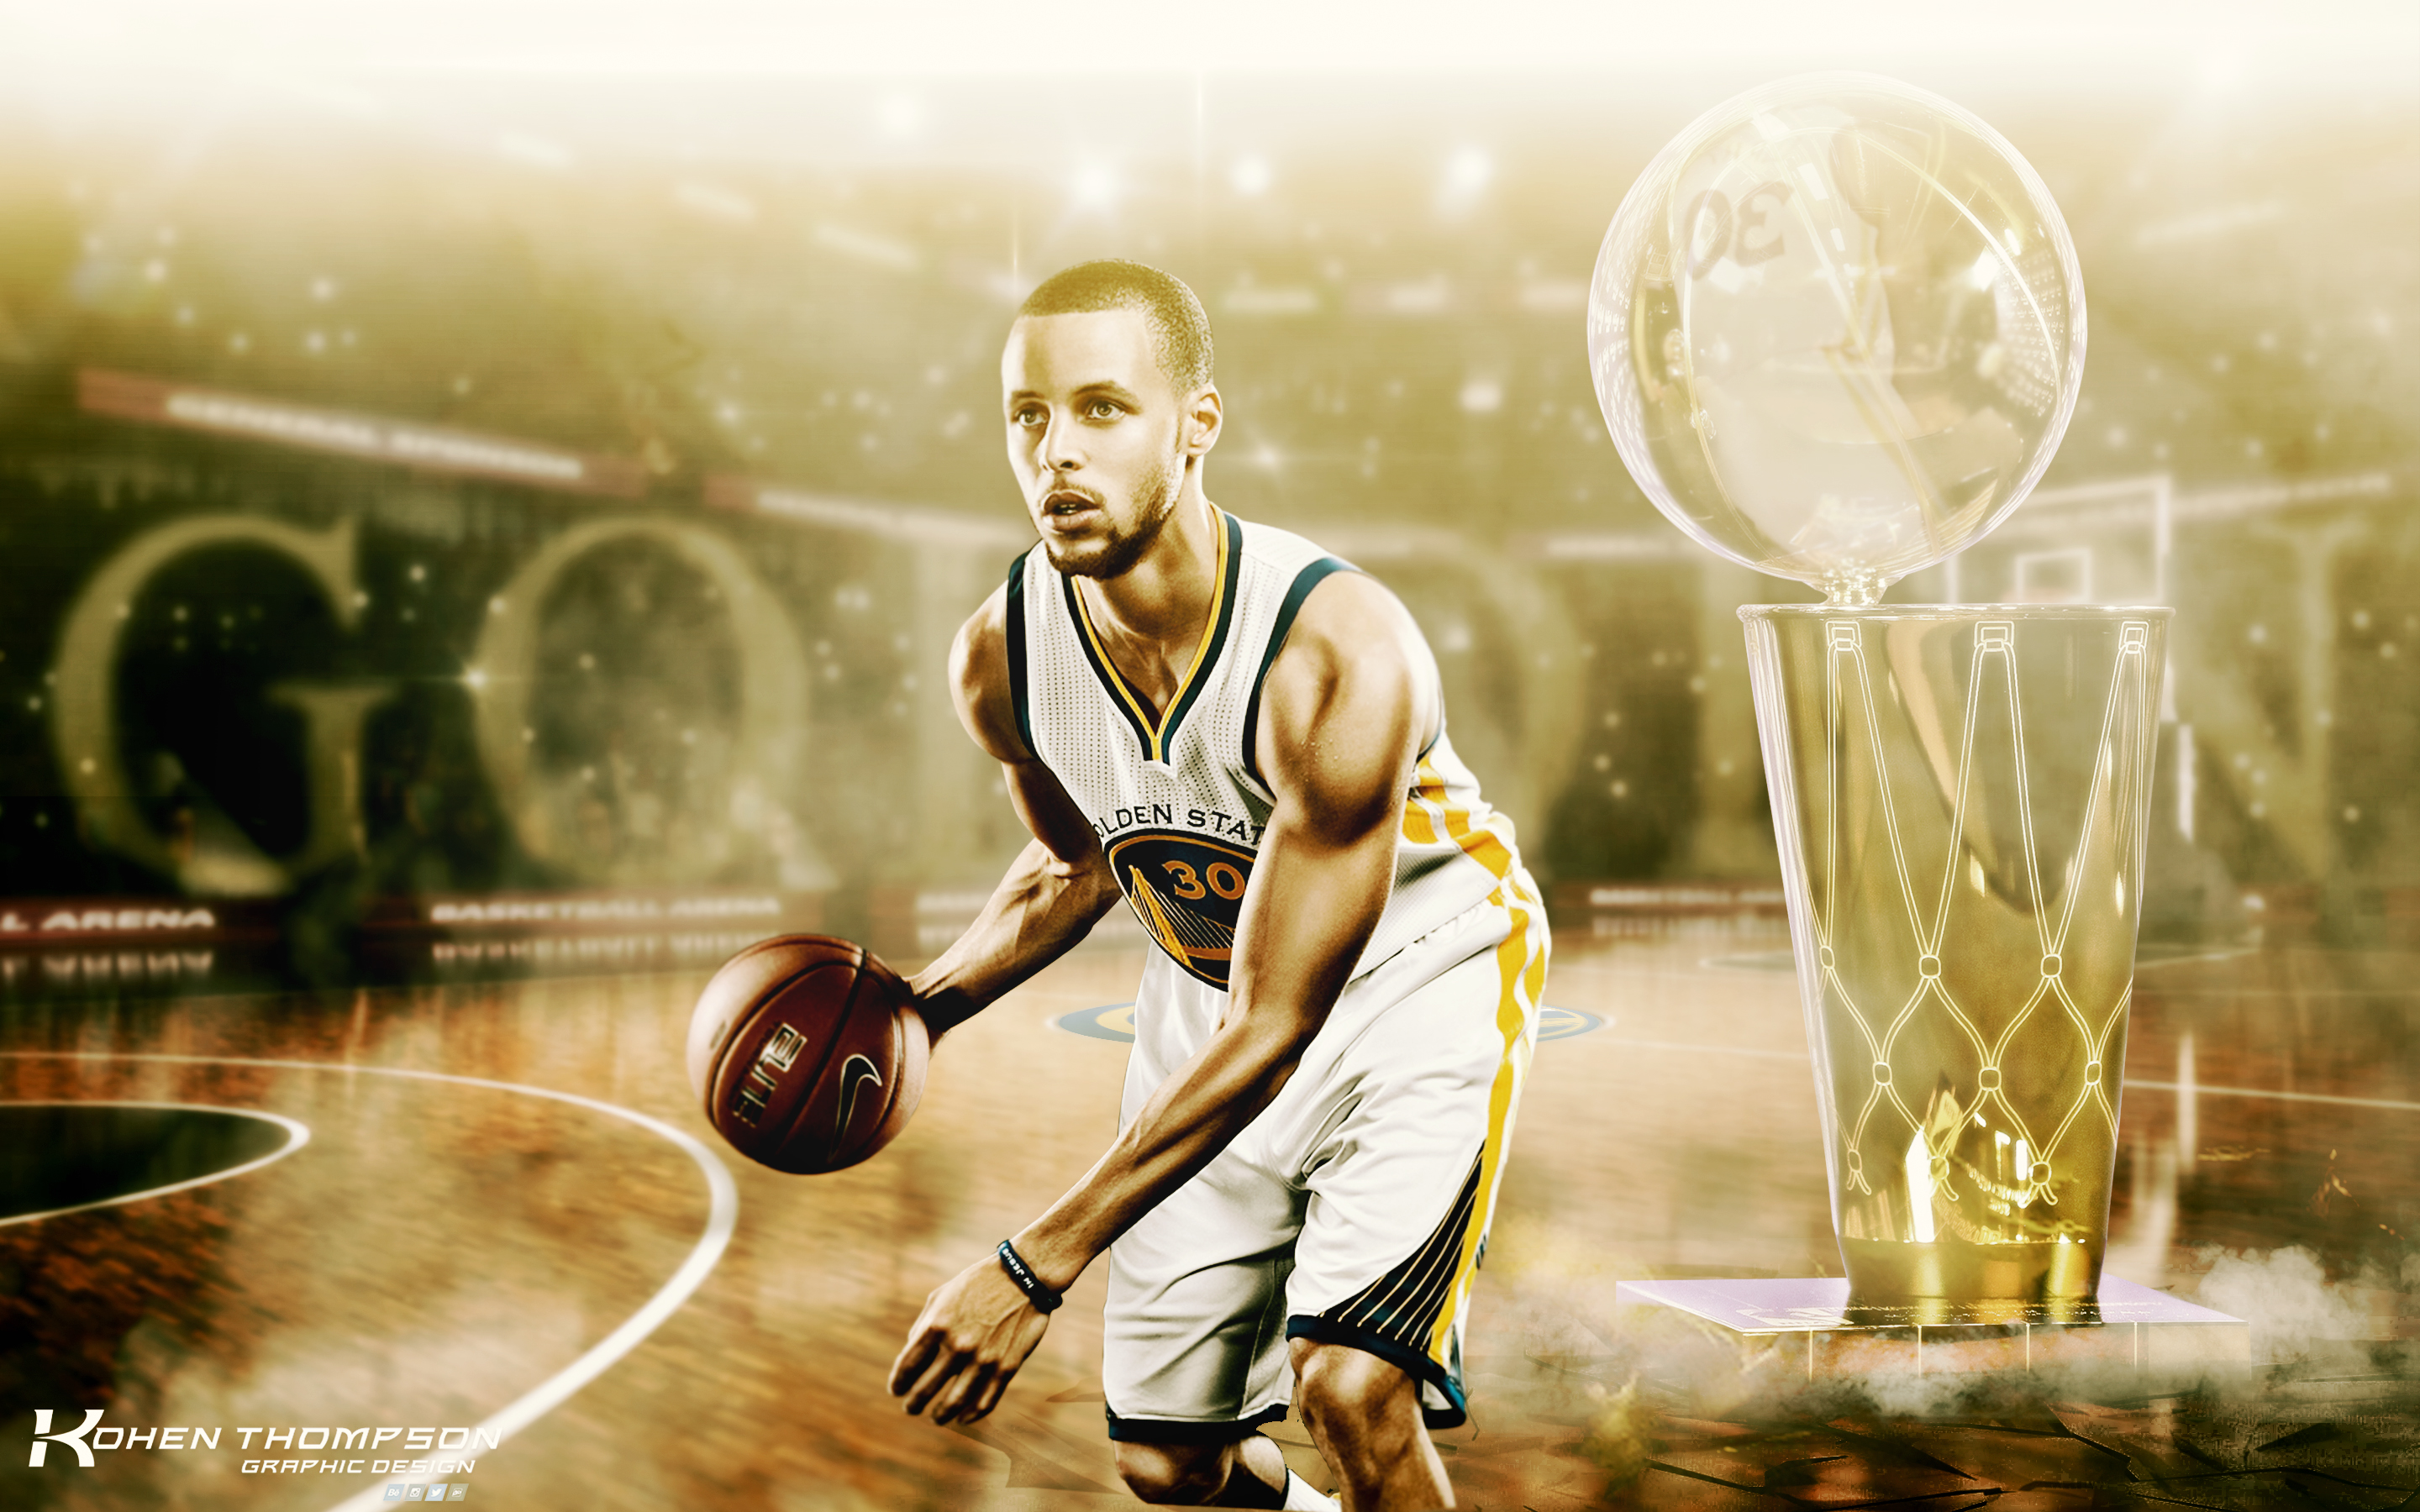 Stephen Curry Wallpaper by kohentdesign 2880x1800